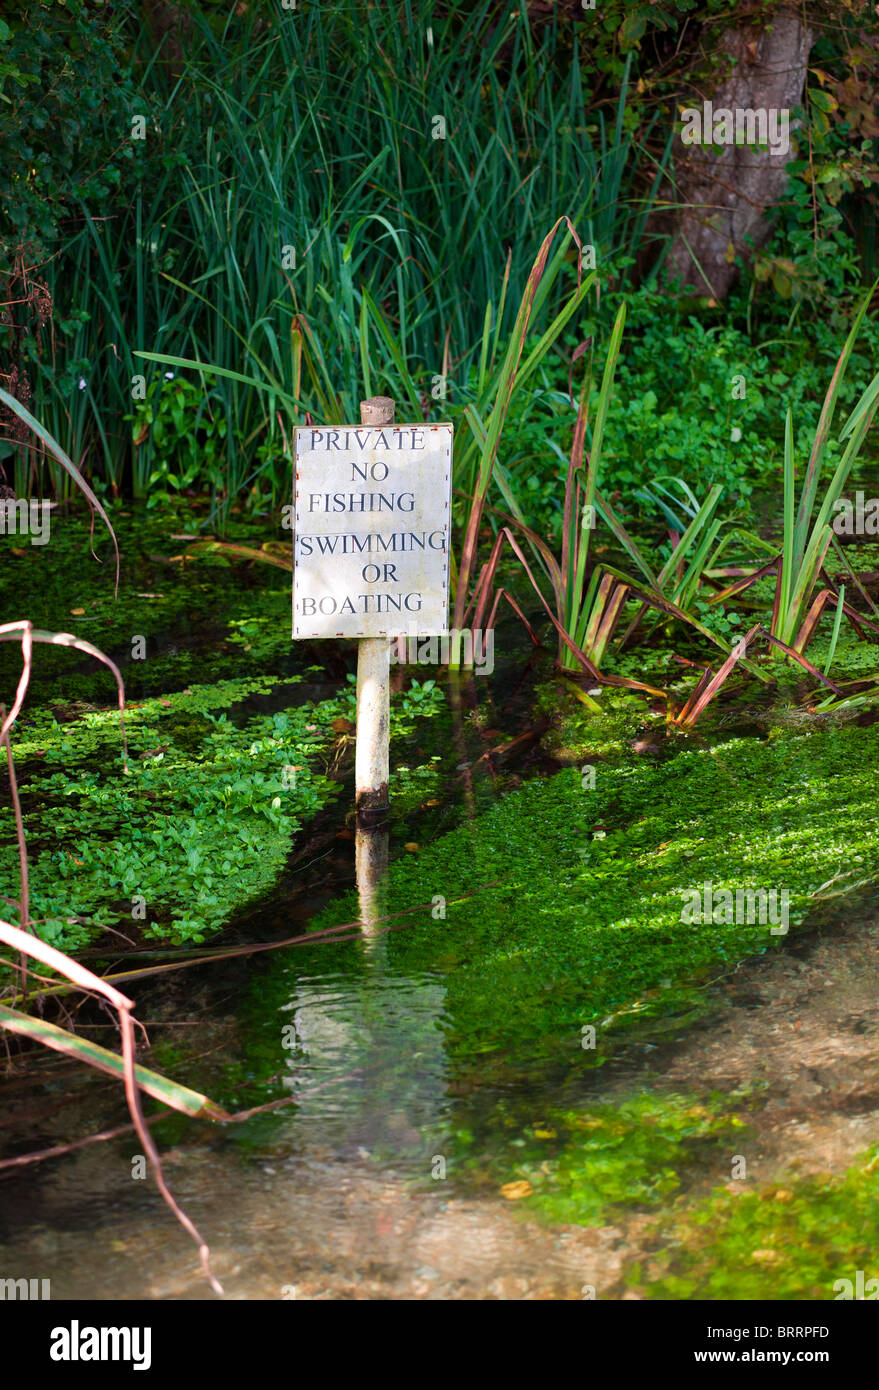 Private No Fishing Swimming or Boating River Warning Sign - Stock Image